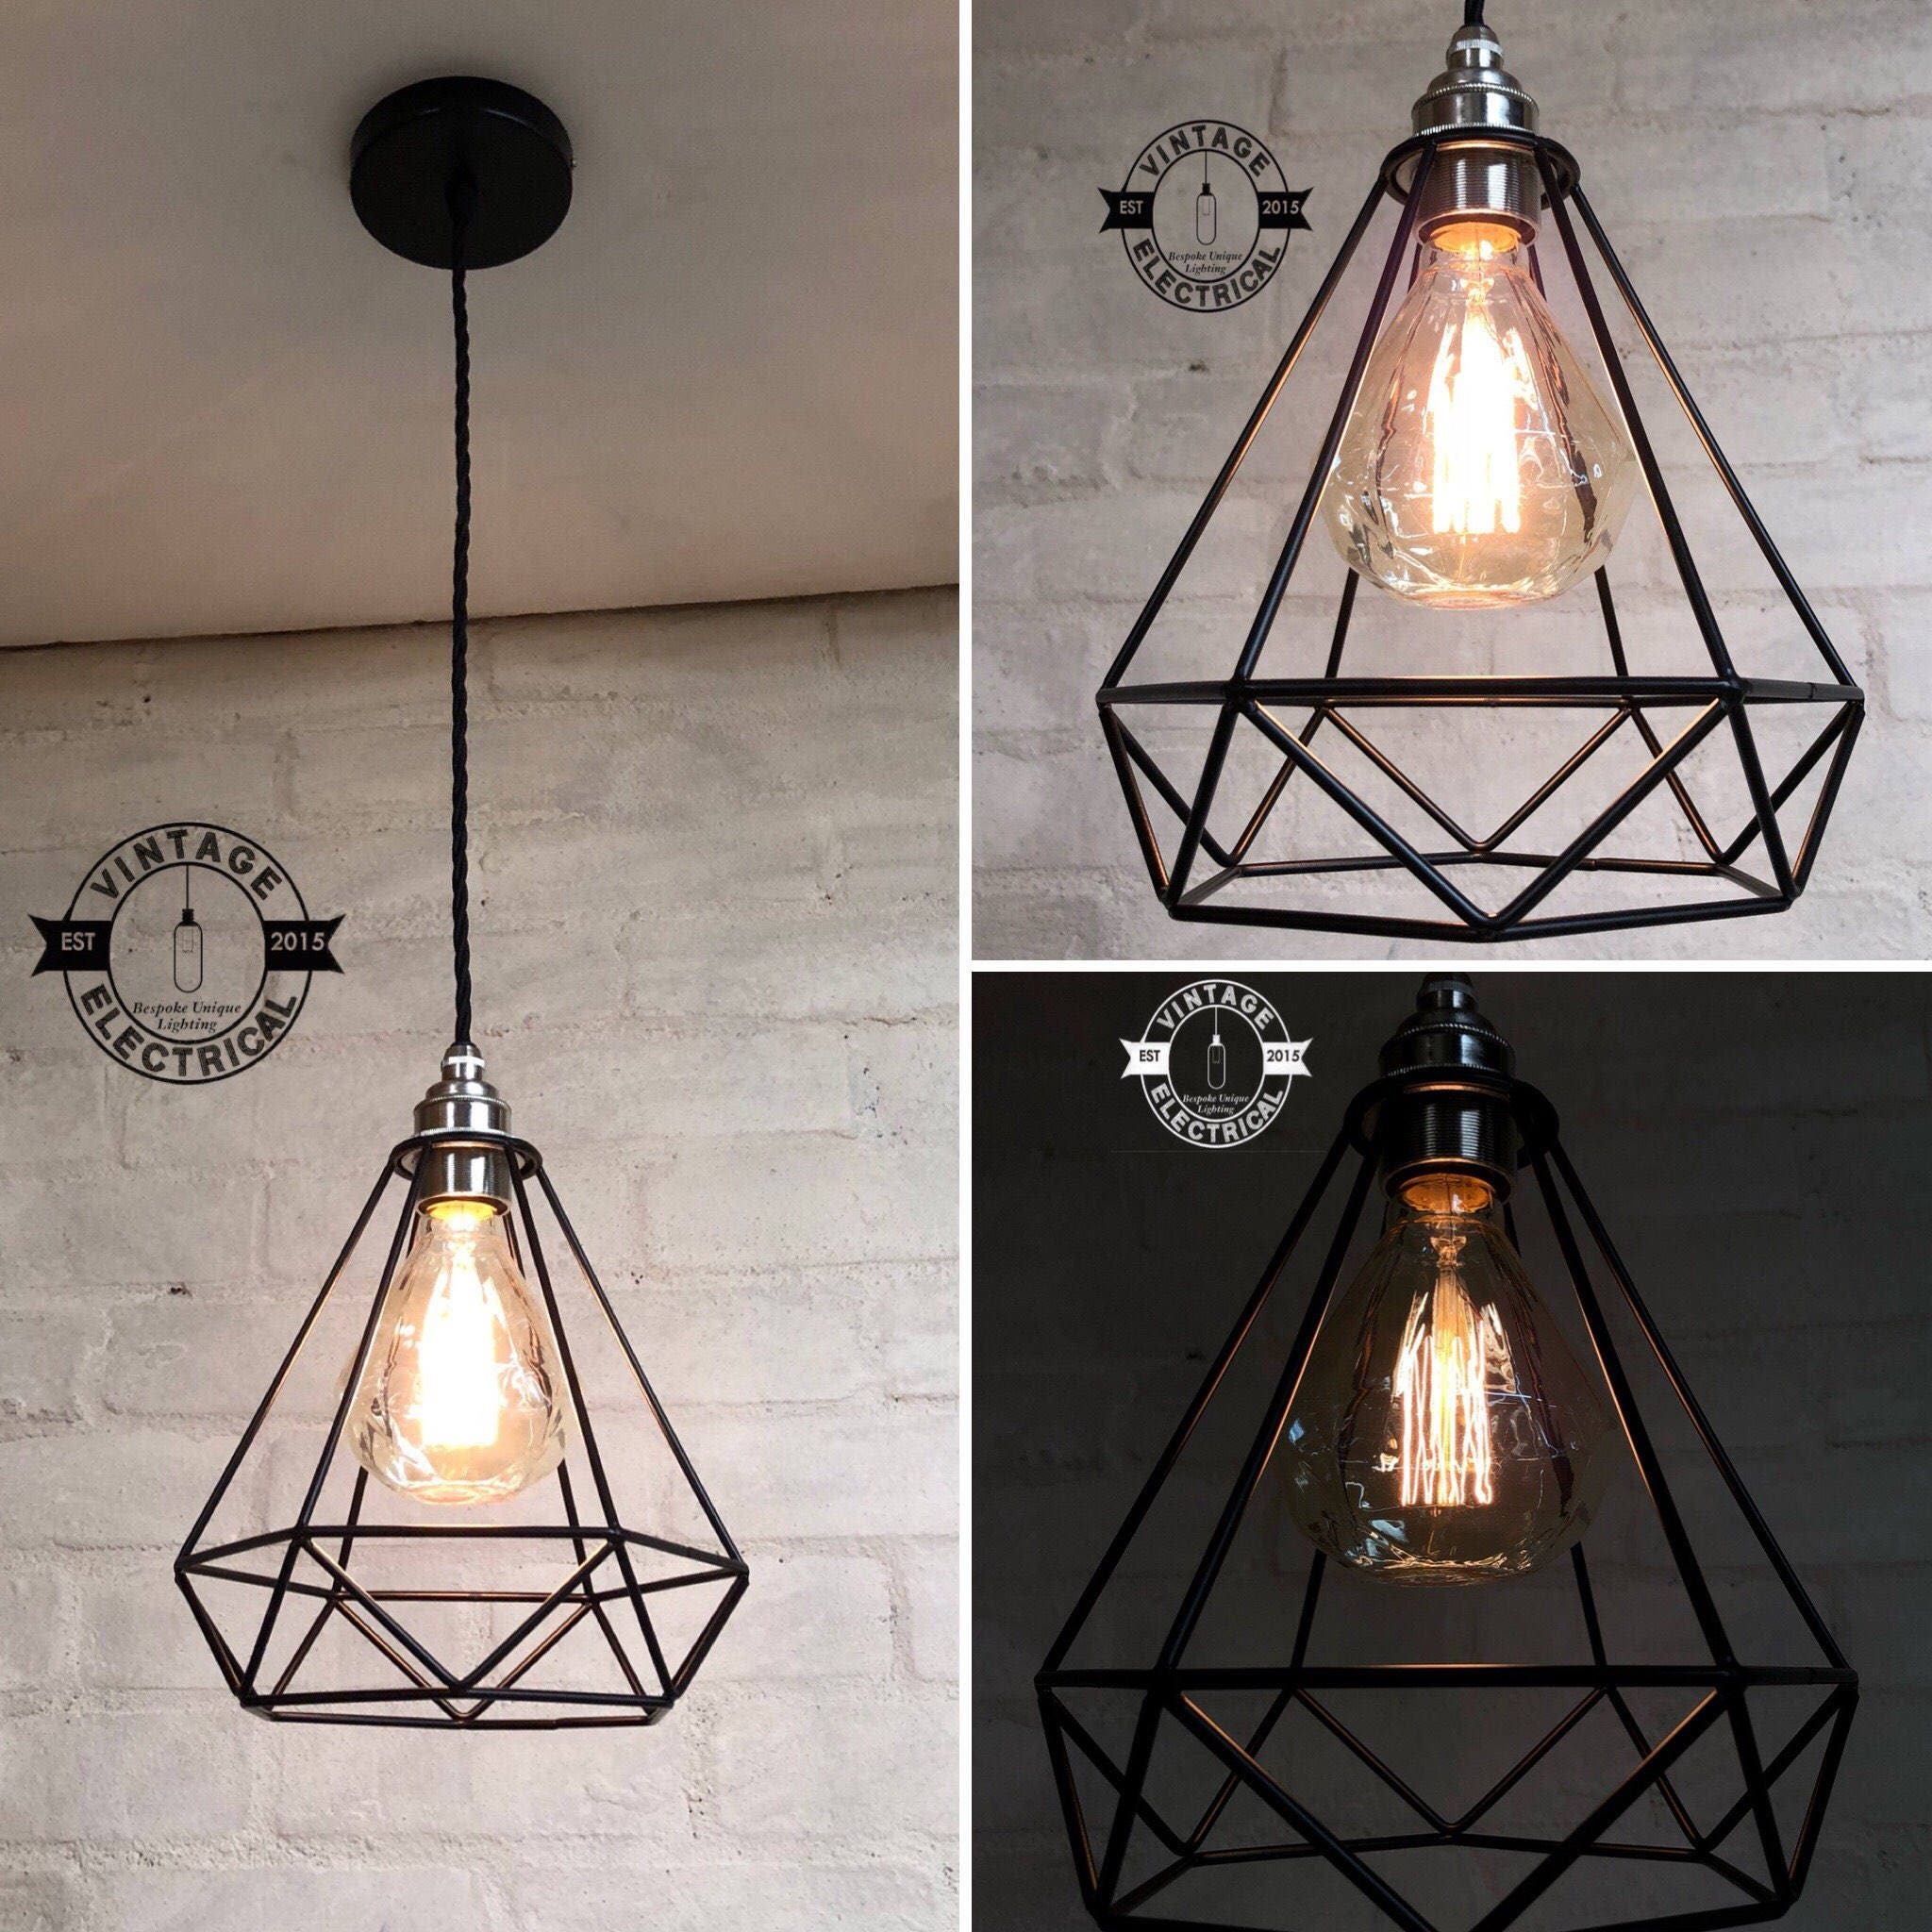 light island hanging spherical rustic shade pendant dp lights ceiling vintage retro metal perfectshow com chandelier kitchen round edison iron amazon